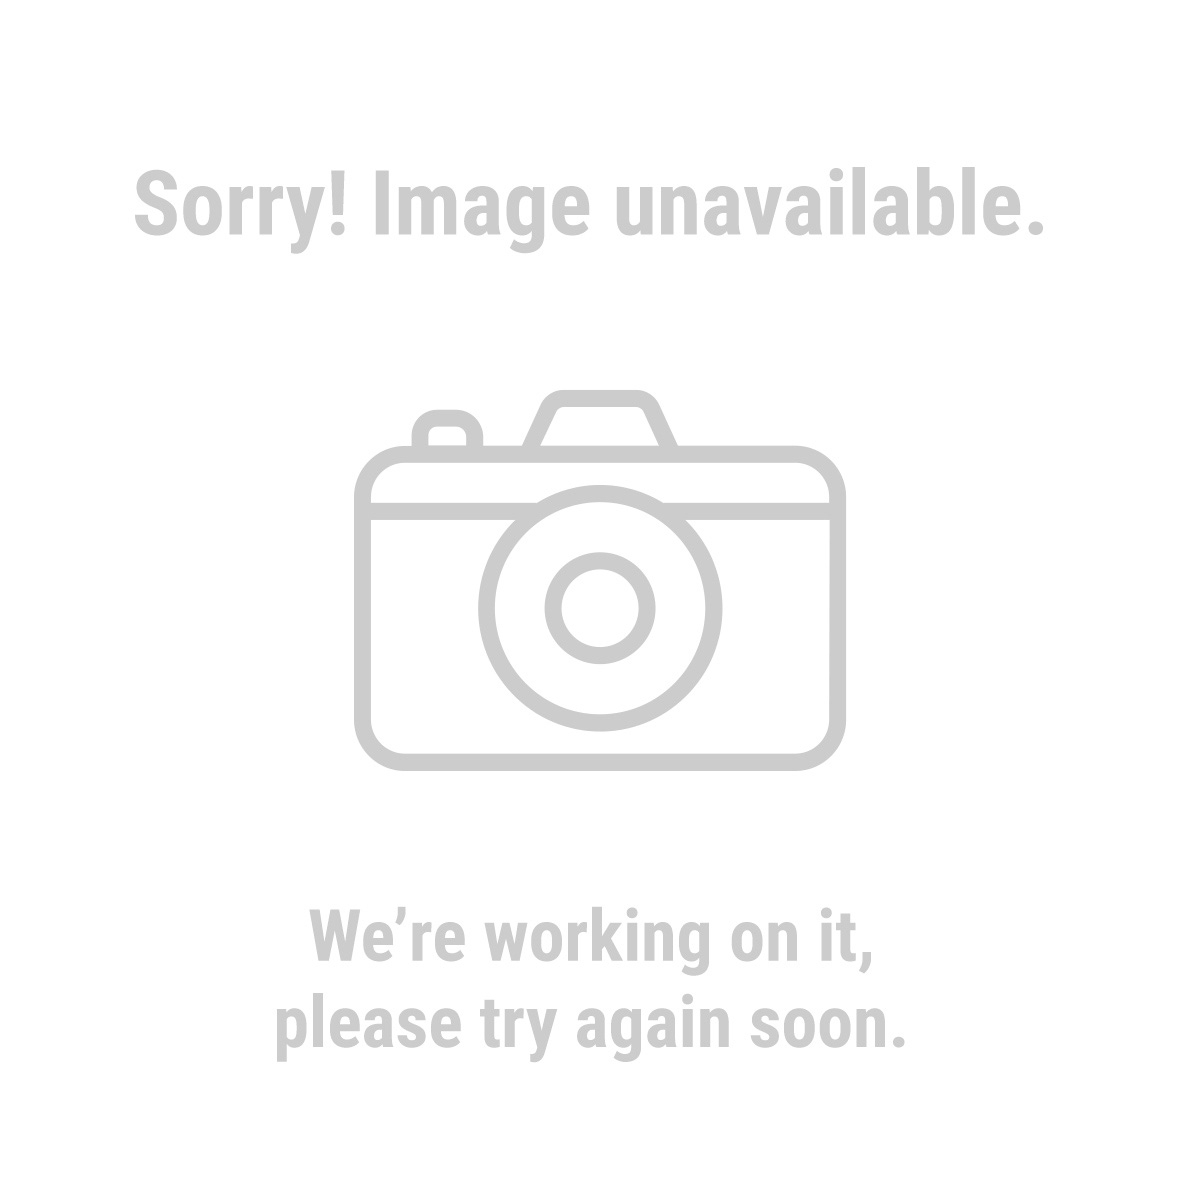 Warrior 69975 7 Piece 220 Grit Emery Sheets